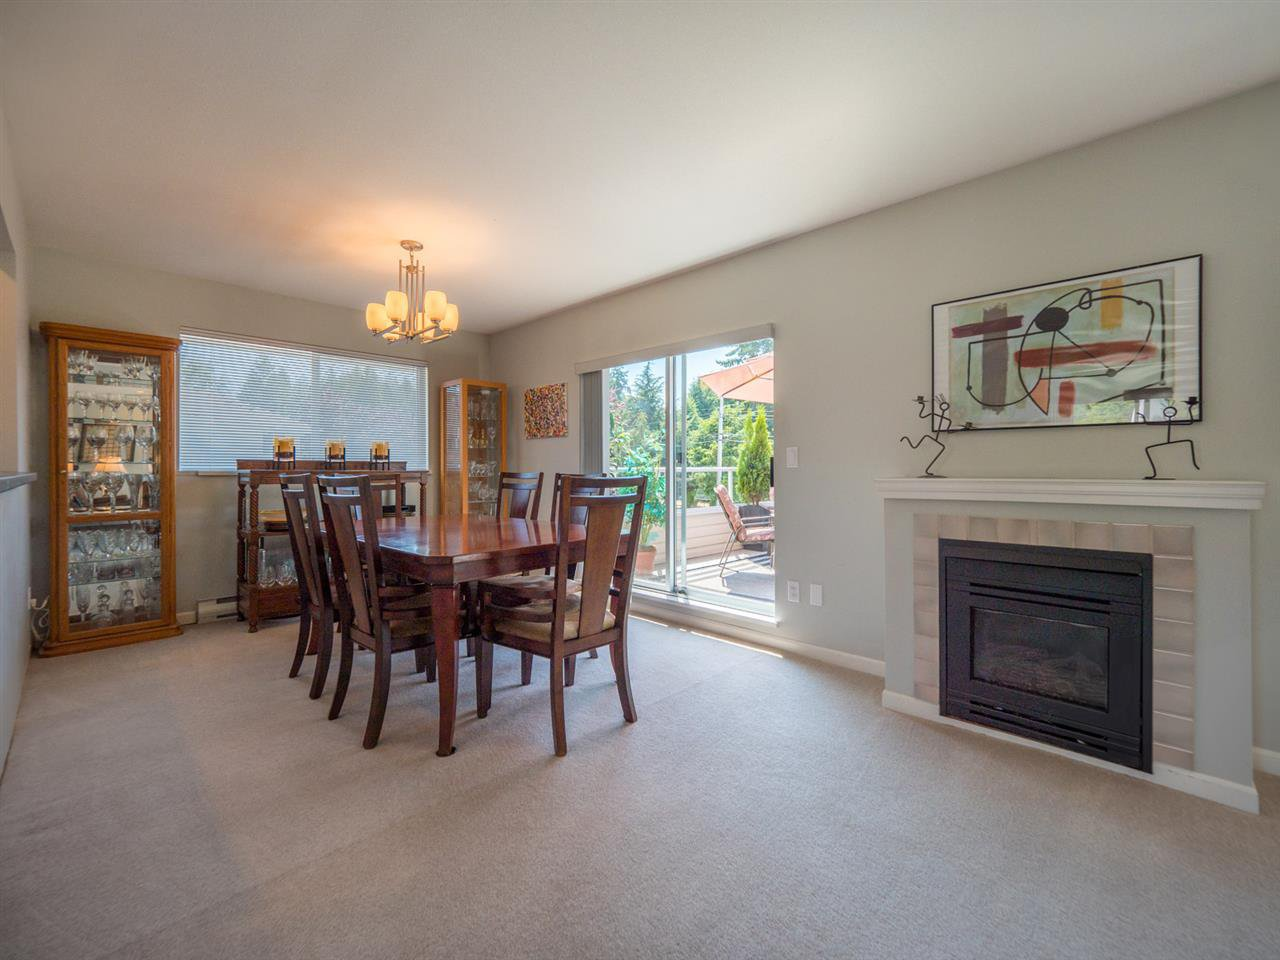 """Photo 2: Photos: 16 5630 TRAIL Avenue in Sechelt: Sechelt District Townhouse for sale in """"HIGHPOINT"""" (Sunshine Coast)  : MLS®# R2382780"""